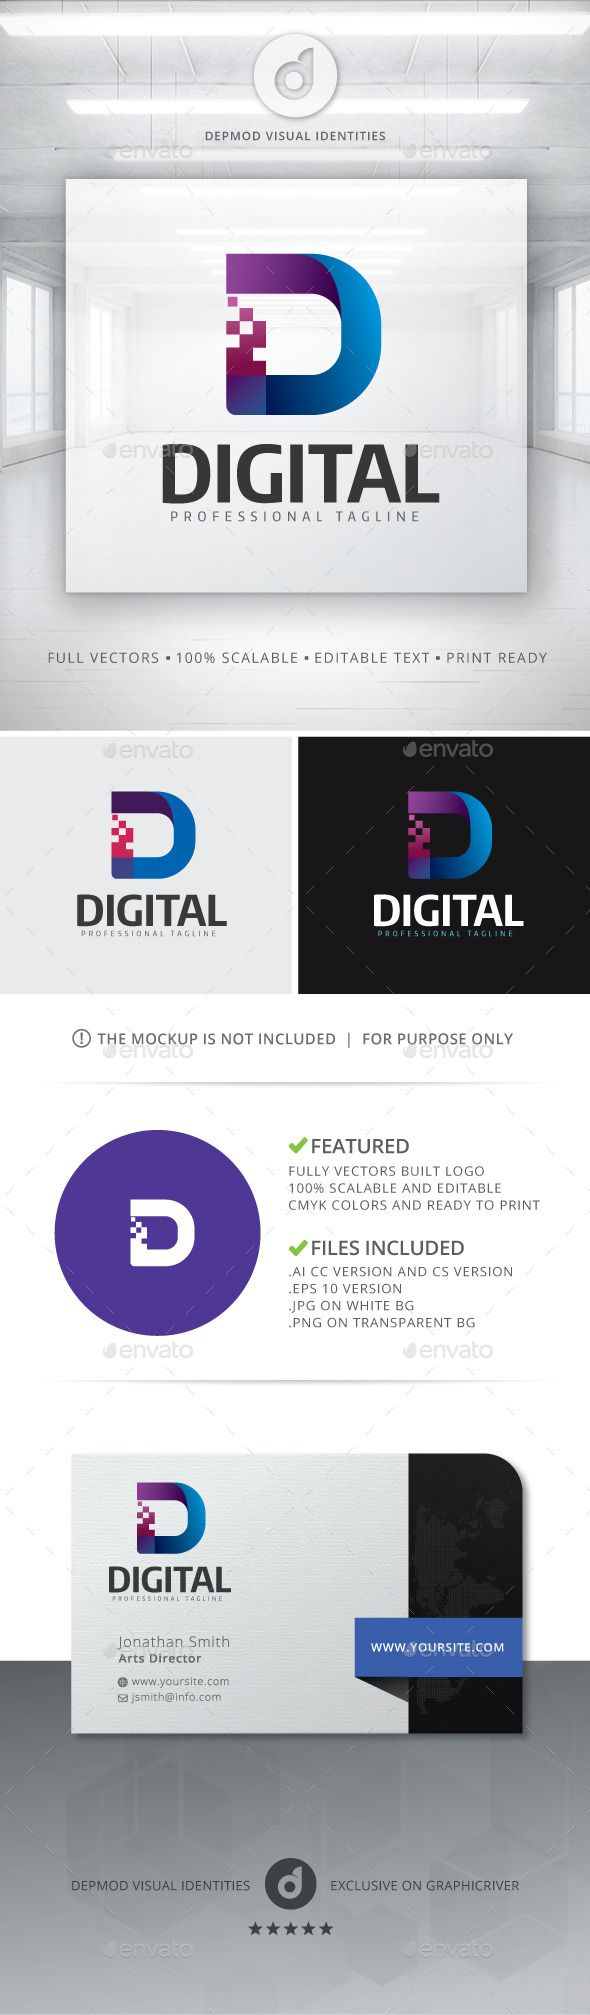 Digital - Logo Design Template Vector #logotype Download it here: http://graphicriver.net/item/digital-logo/12116265?s_rank=231?ref=nesto